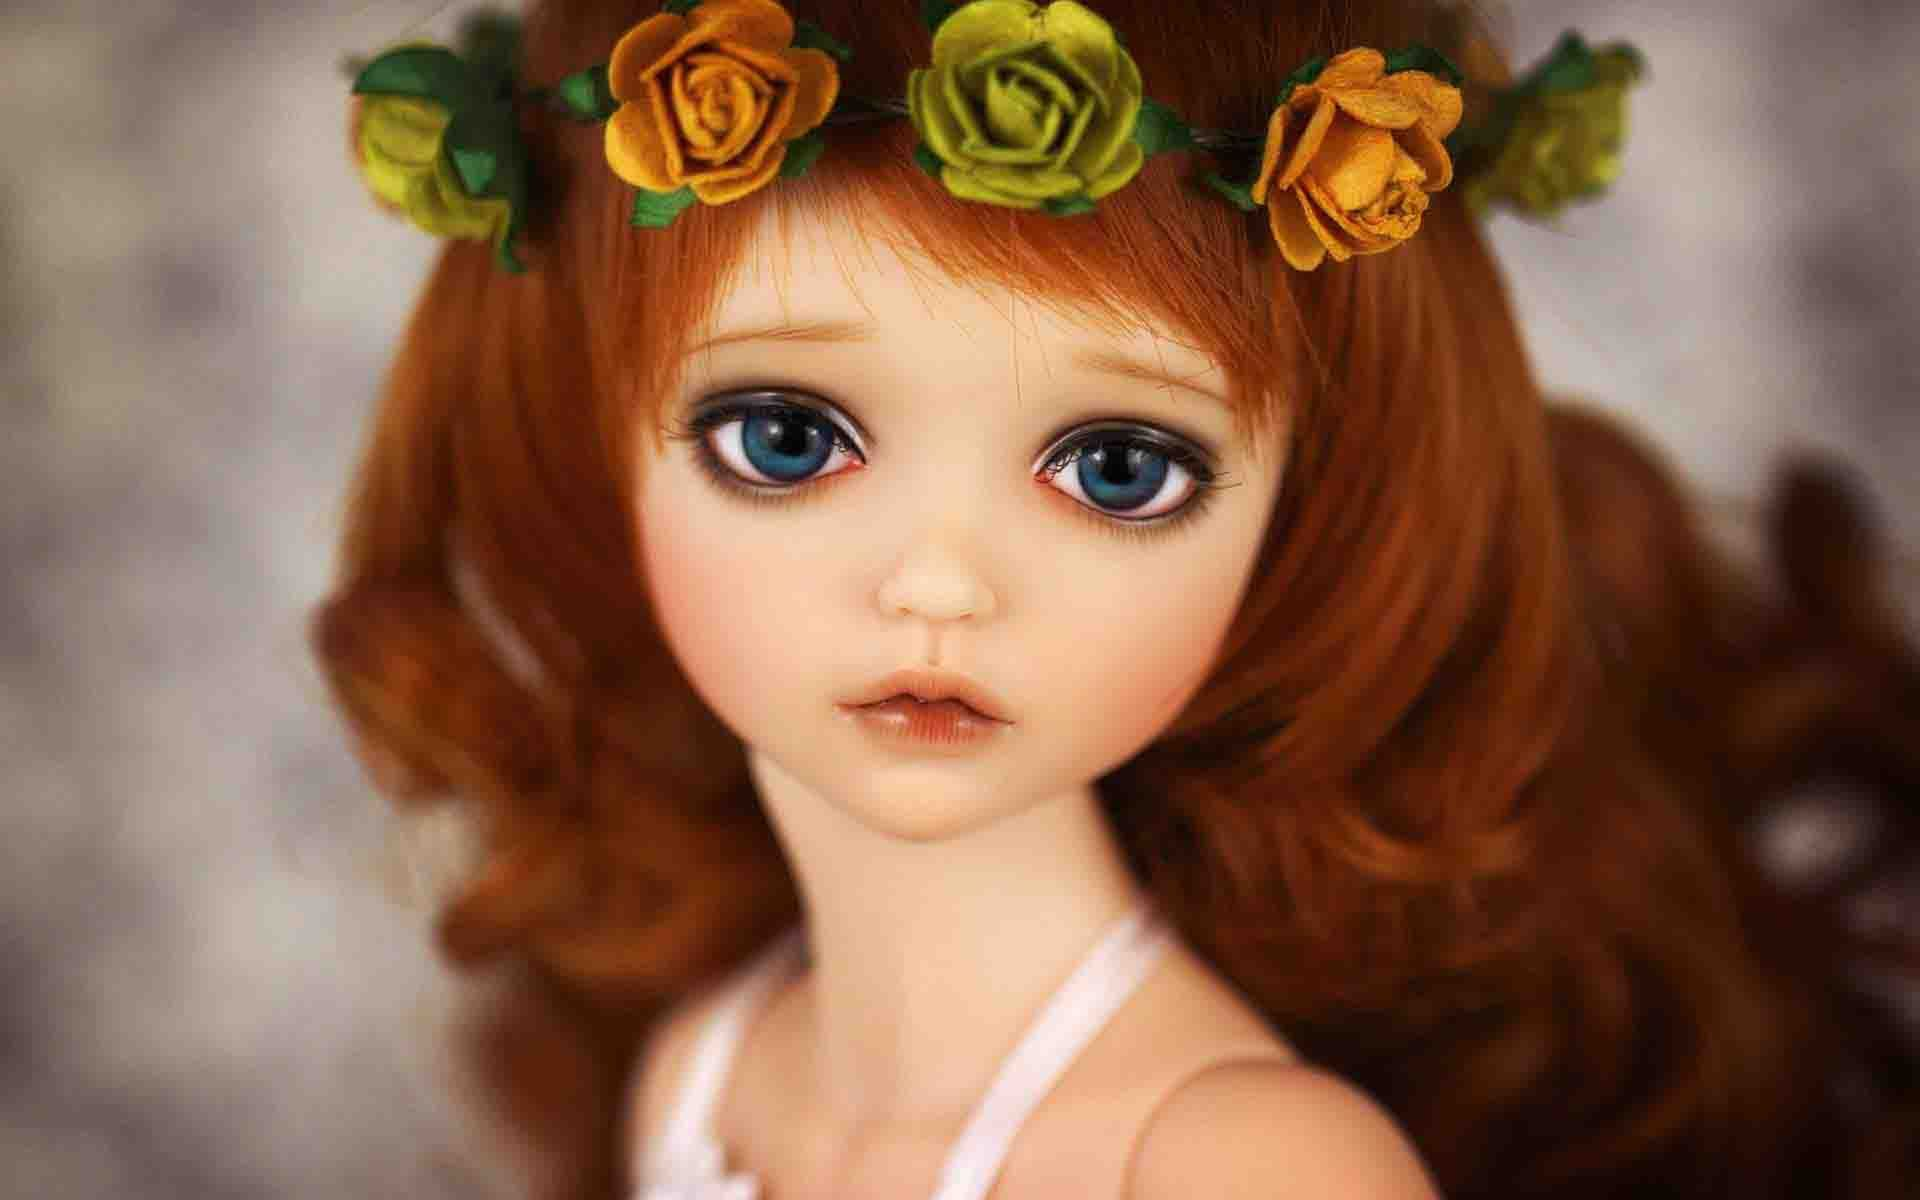 Beautiful toy girl hd wallpapers is the others category wallpaper beautiful toy girl hd wallpapers is the others category wallpaper you can download this wallpaper from voltagebd Gallery